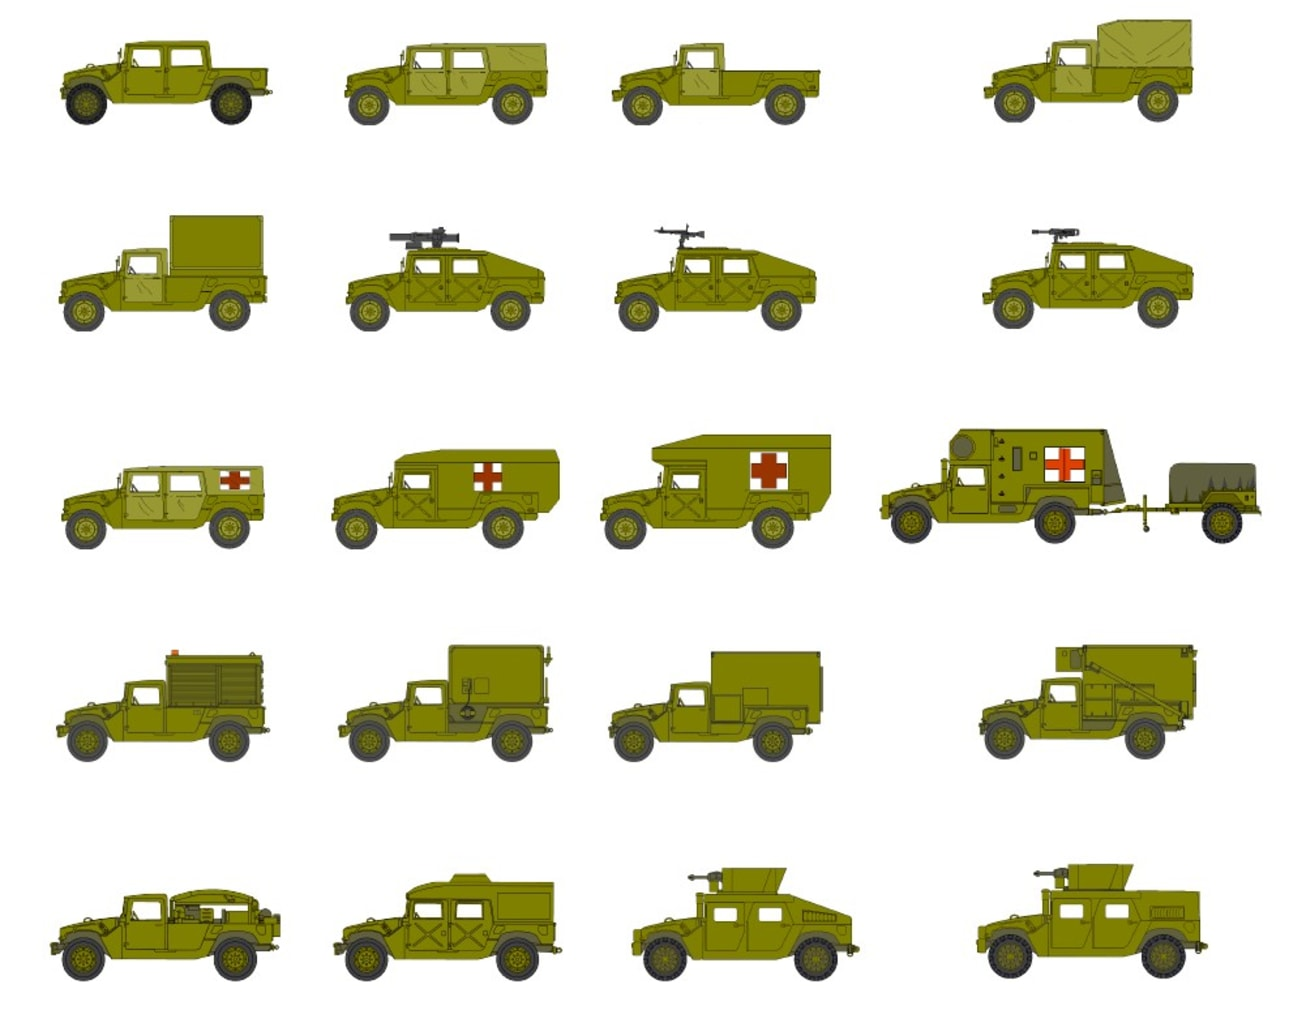 Military Vehicles by Type